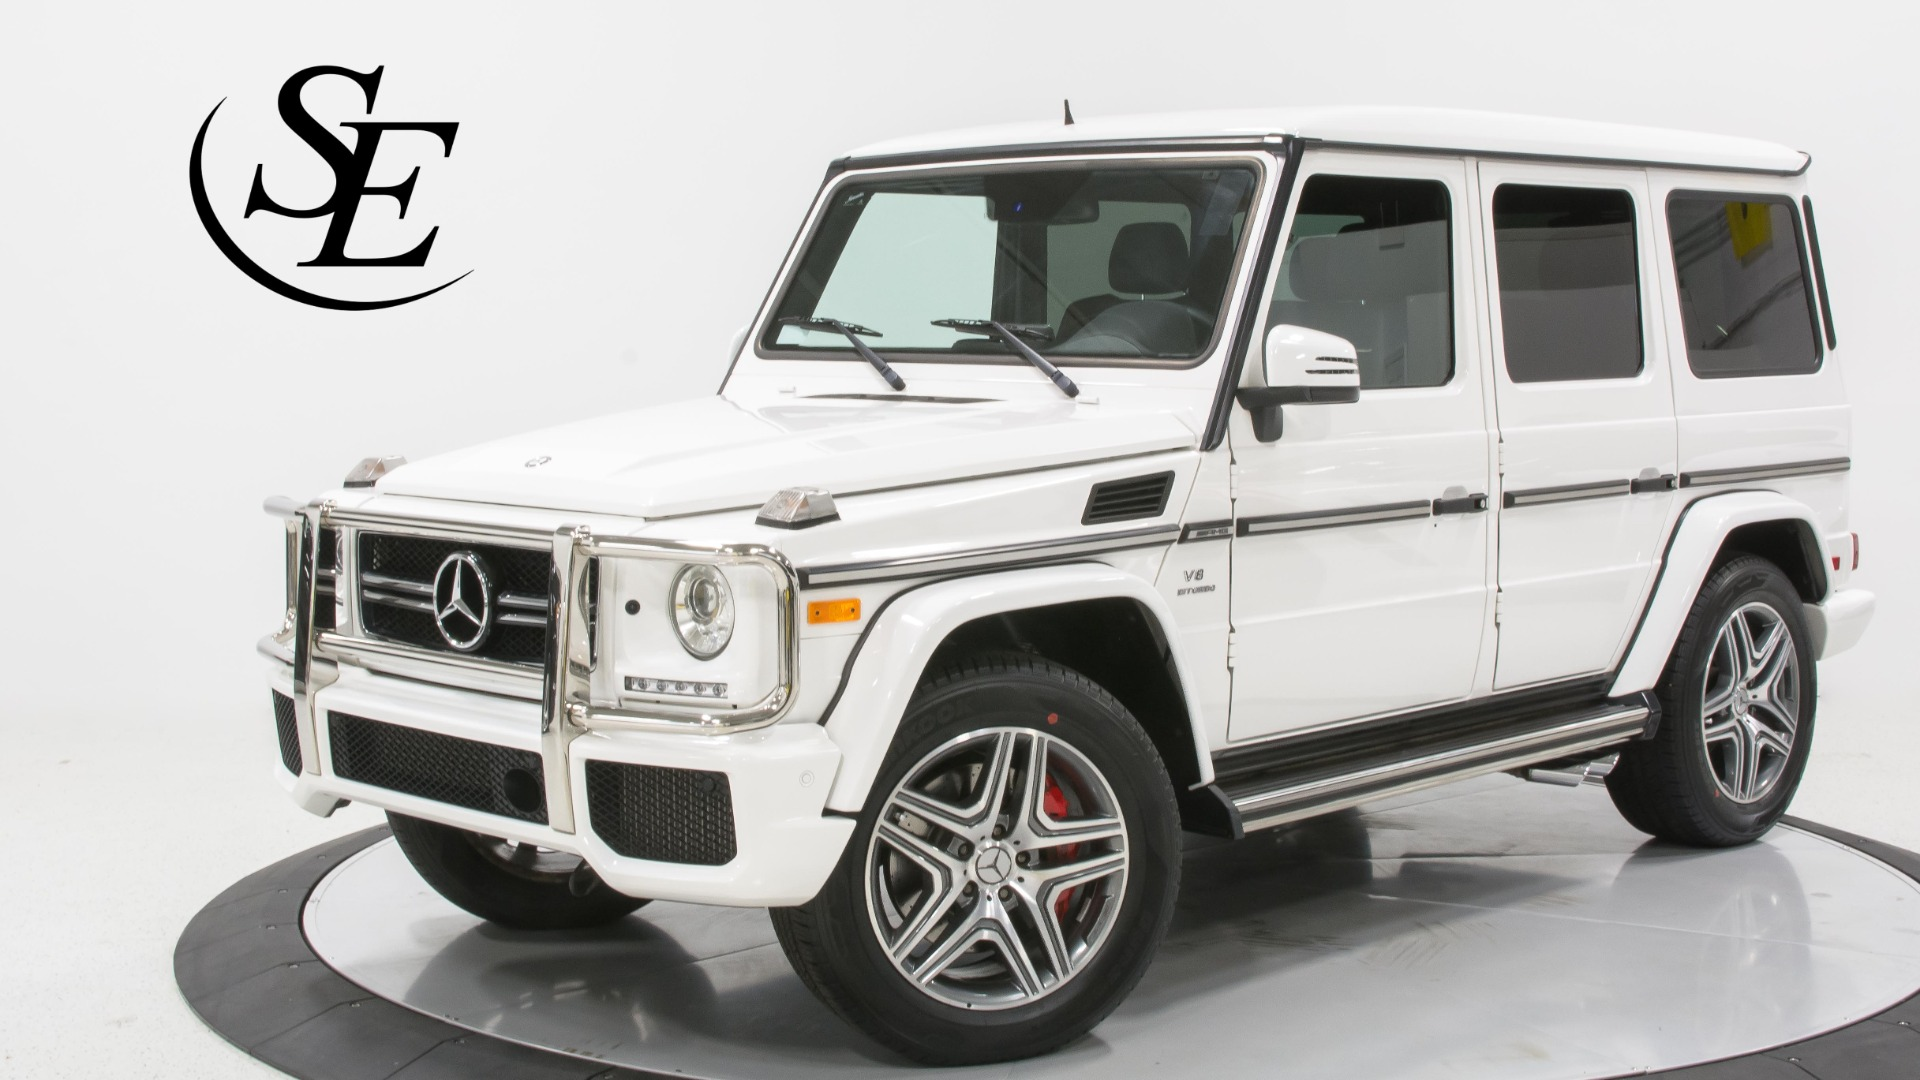 2014 Mercedes Benz G Class G 63 AMG Stock for sale near